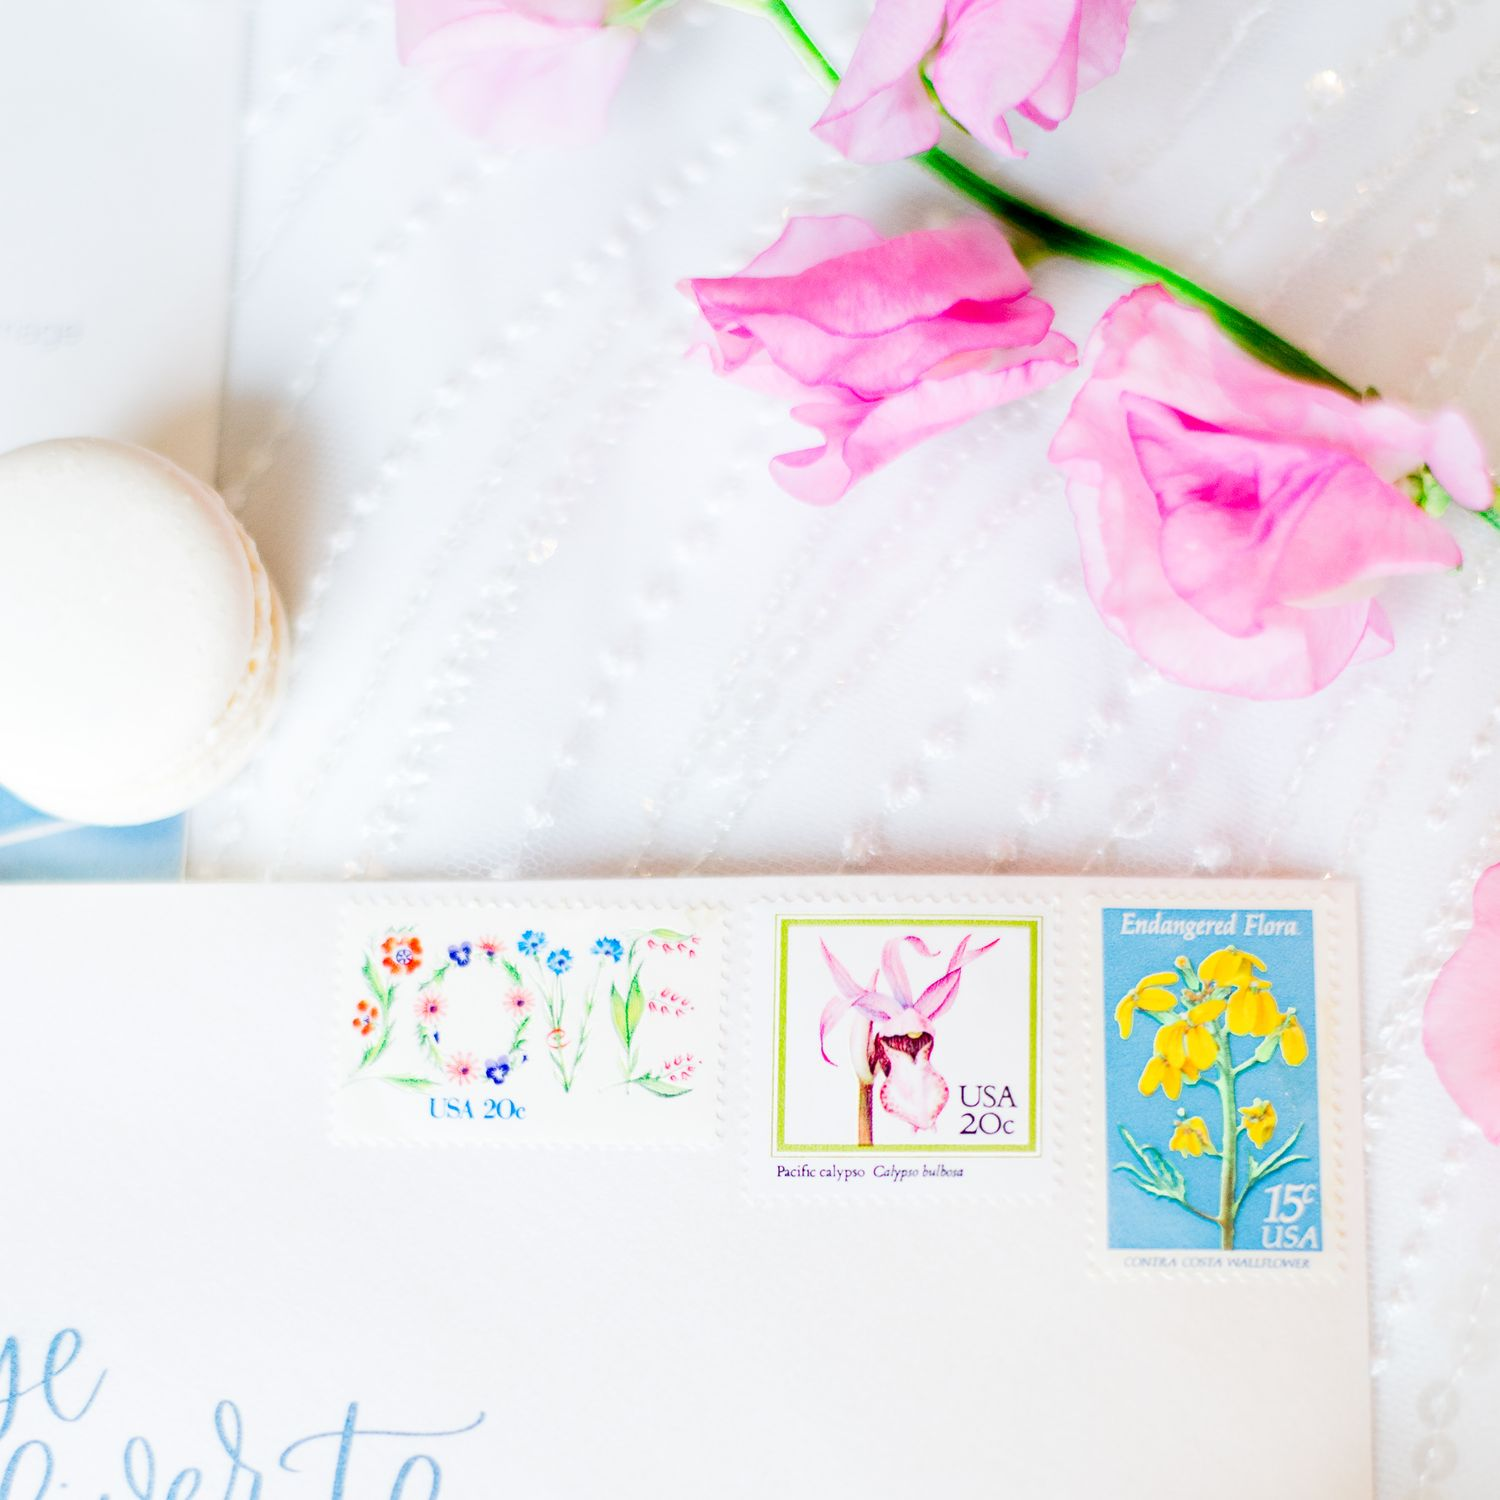 cute colorful floral stamps on envelope and sweet pea flower and macaron next to it